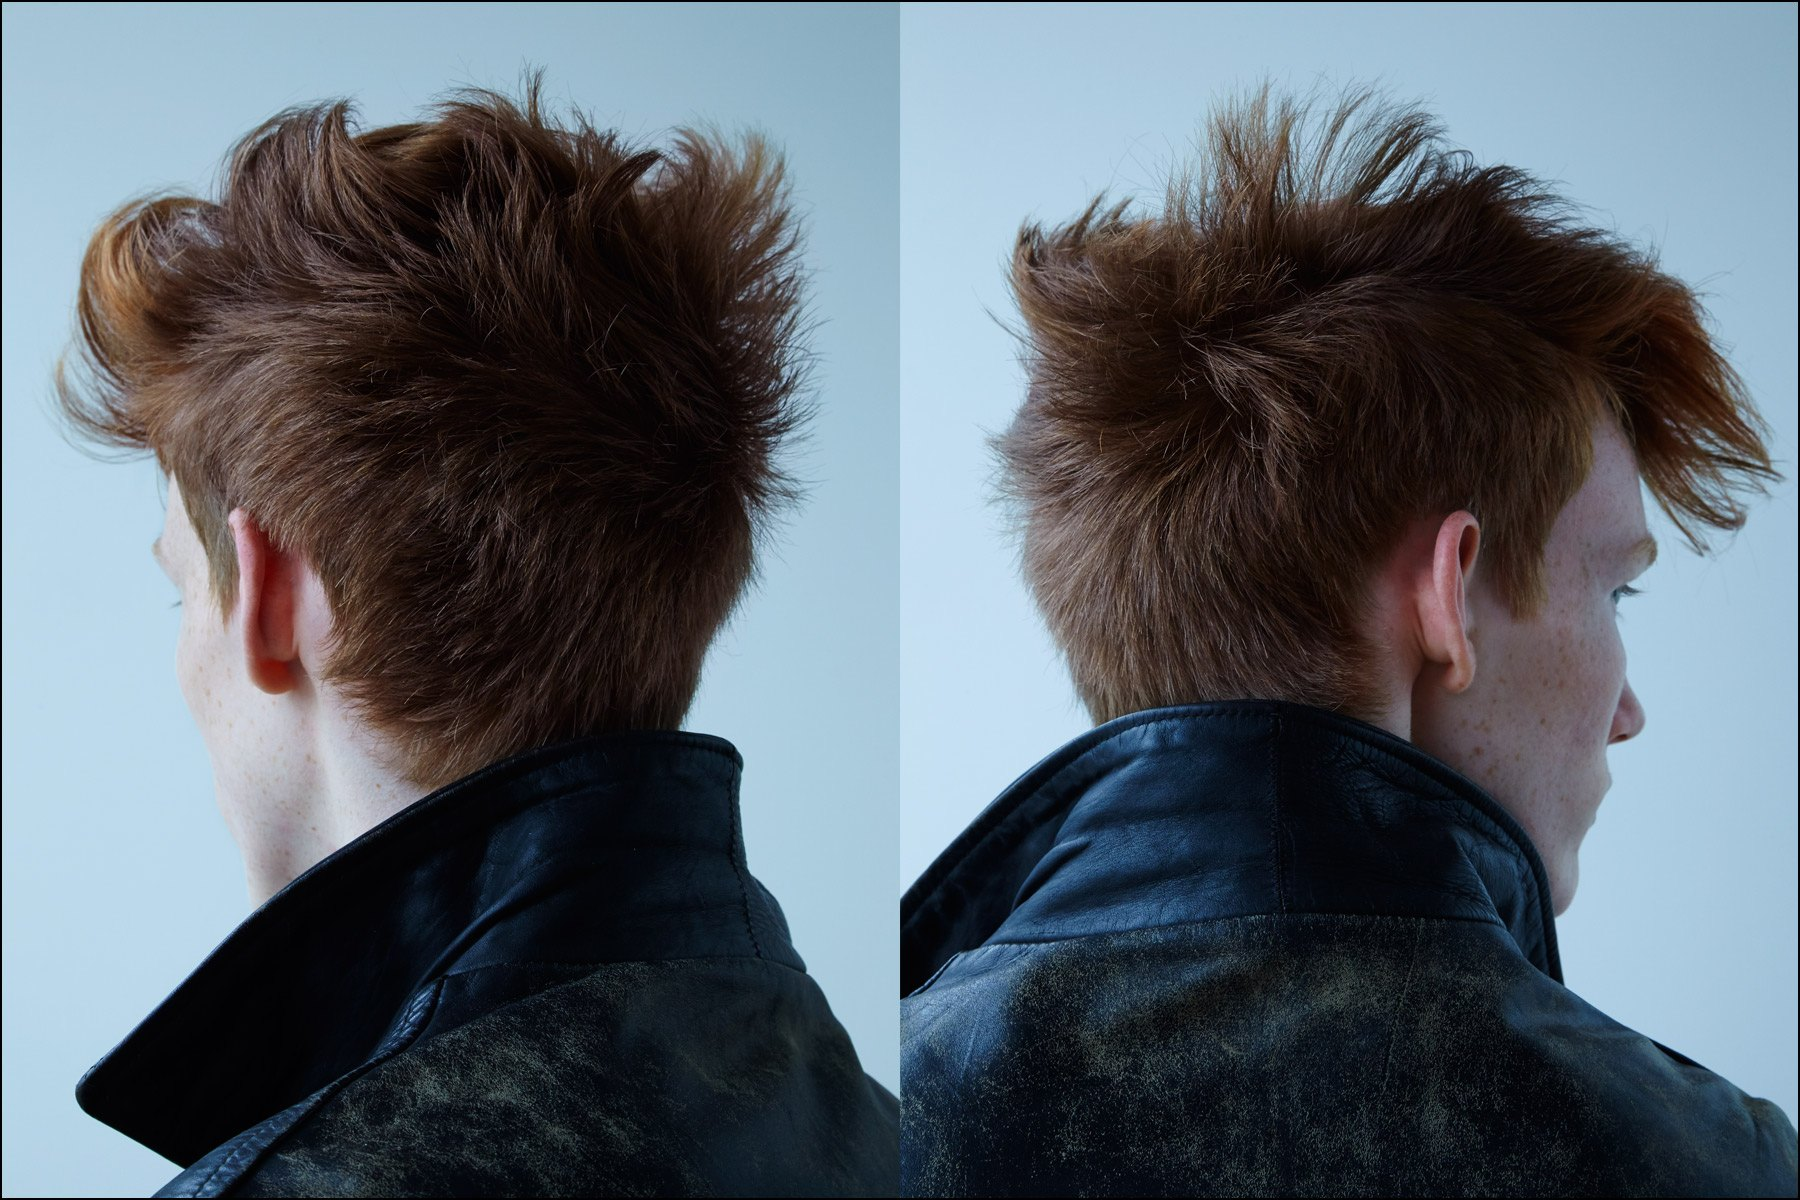 Back of head shots Detail of head shots of model Matt Pitt's, photographed by Alexander Thompson, with men's grooming by Yuhi Kim, for Ponyboy magazine in New York City.